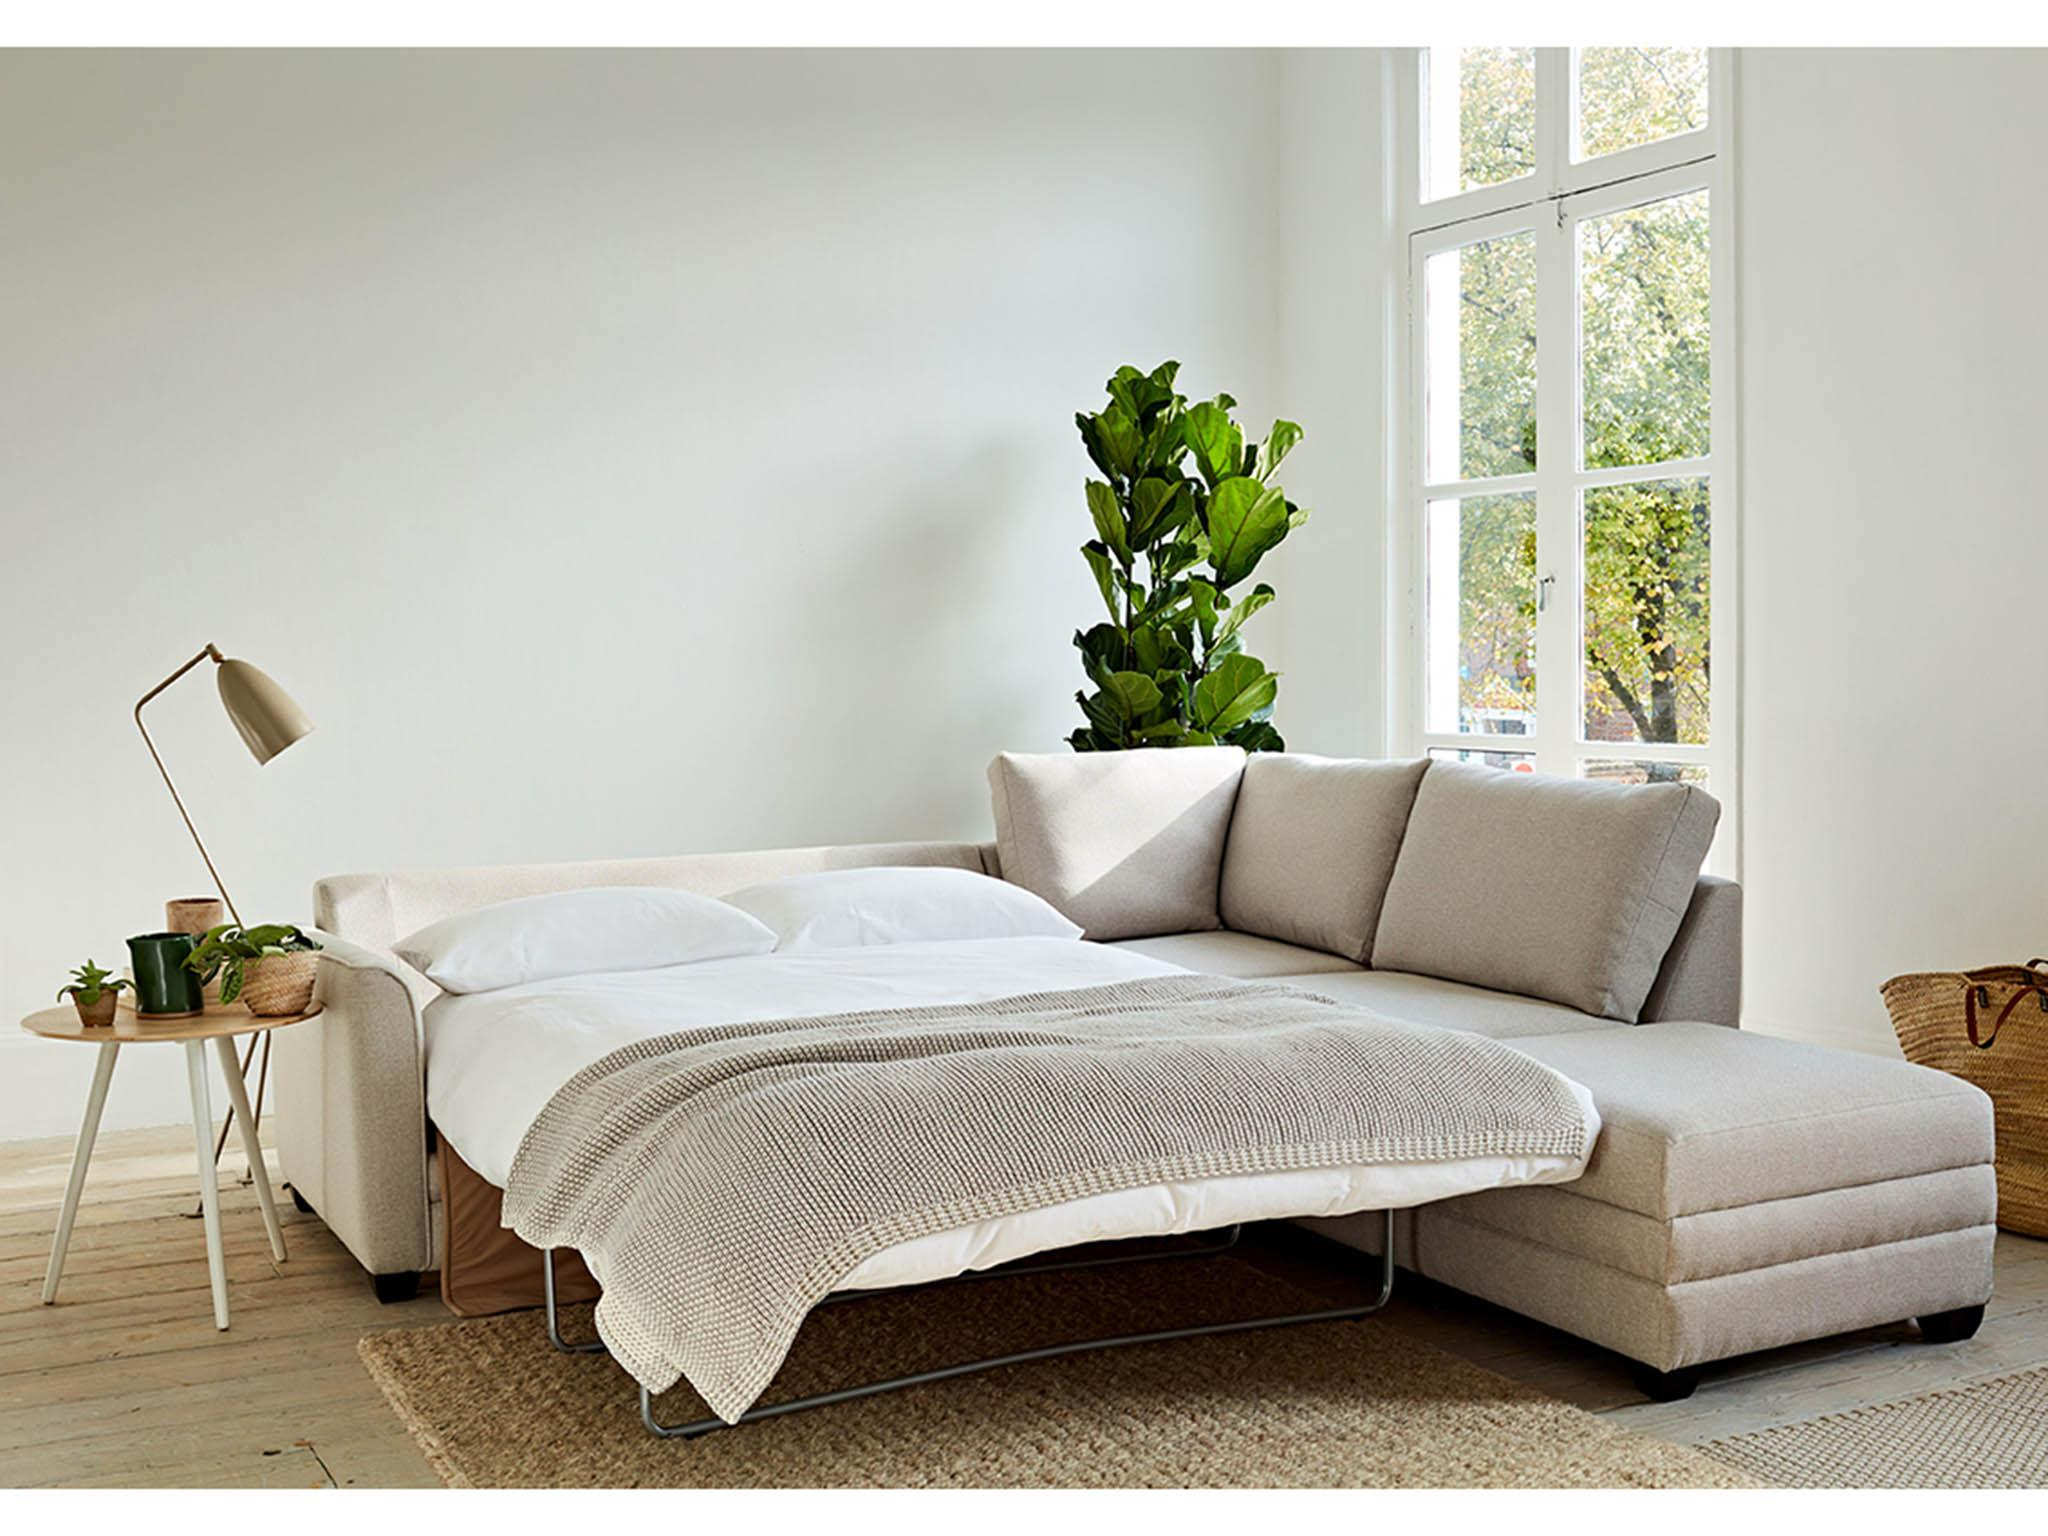 Best Sofa Bed Thats Comfy Stylish And Practical intended for dimensions 2048 X 1536